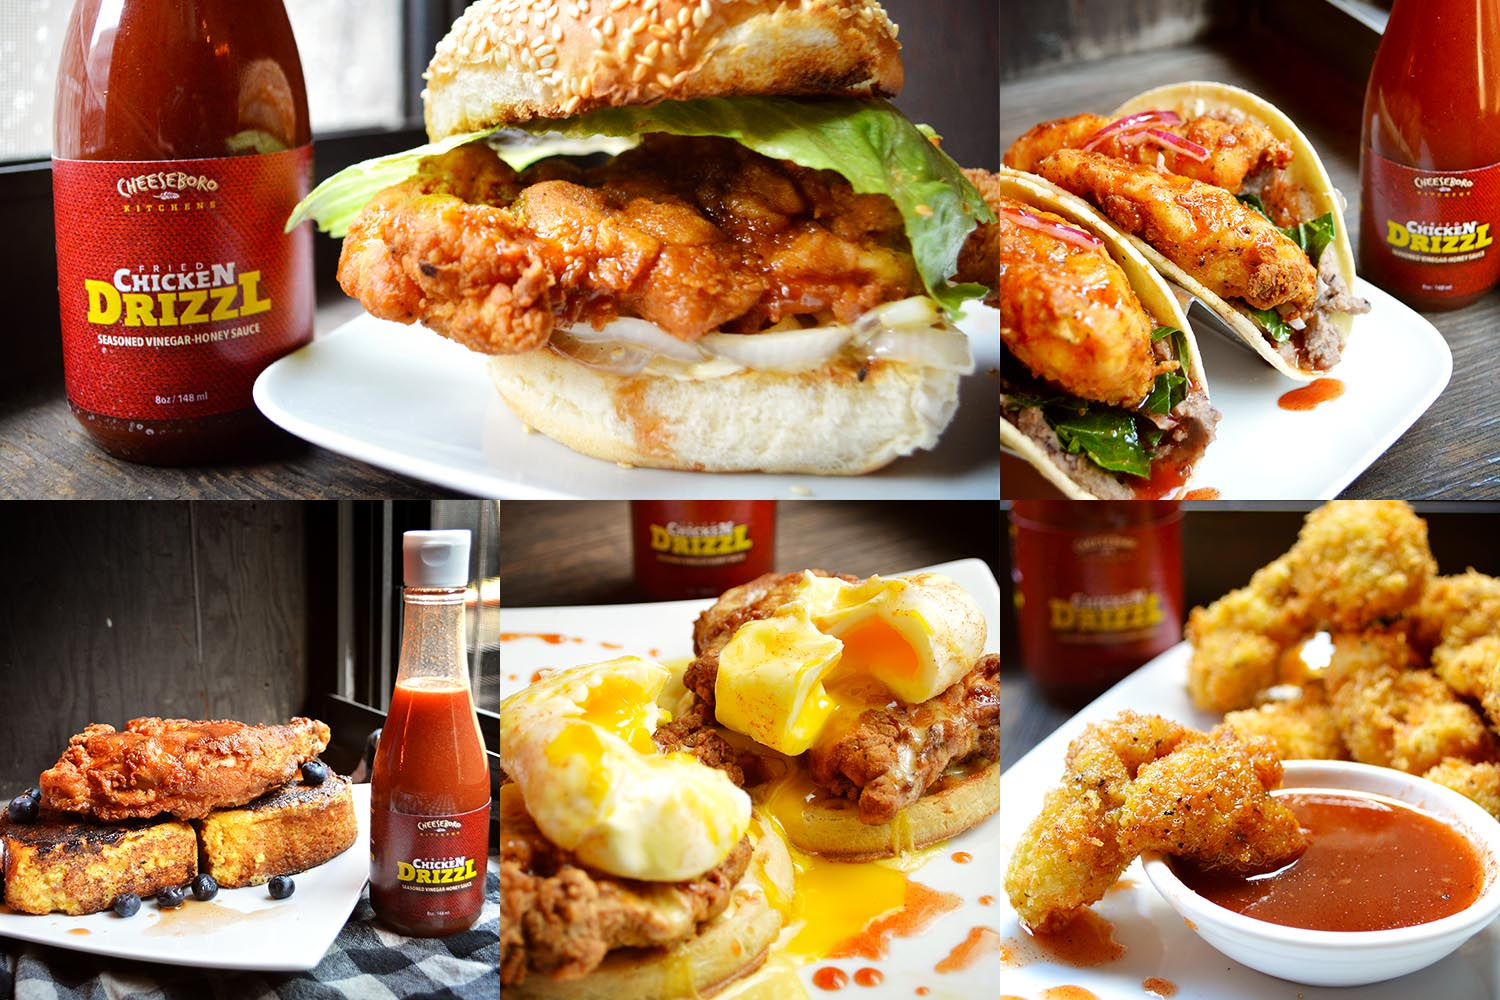 cheeskitch-site-img-product-collage-chicken-drizzl-1500-1000.jpg